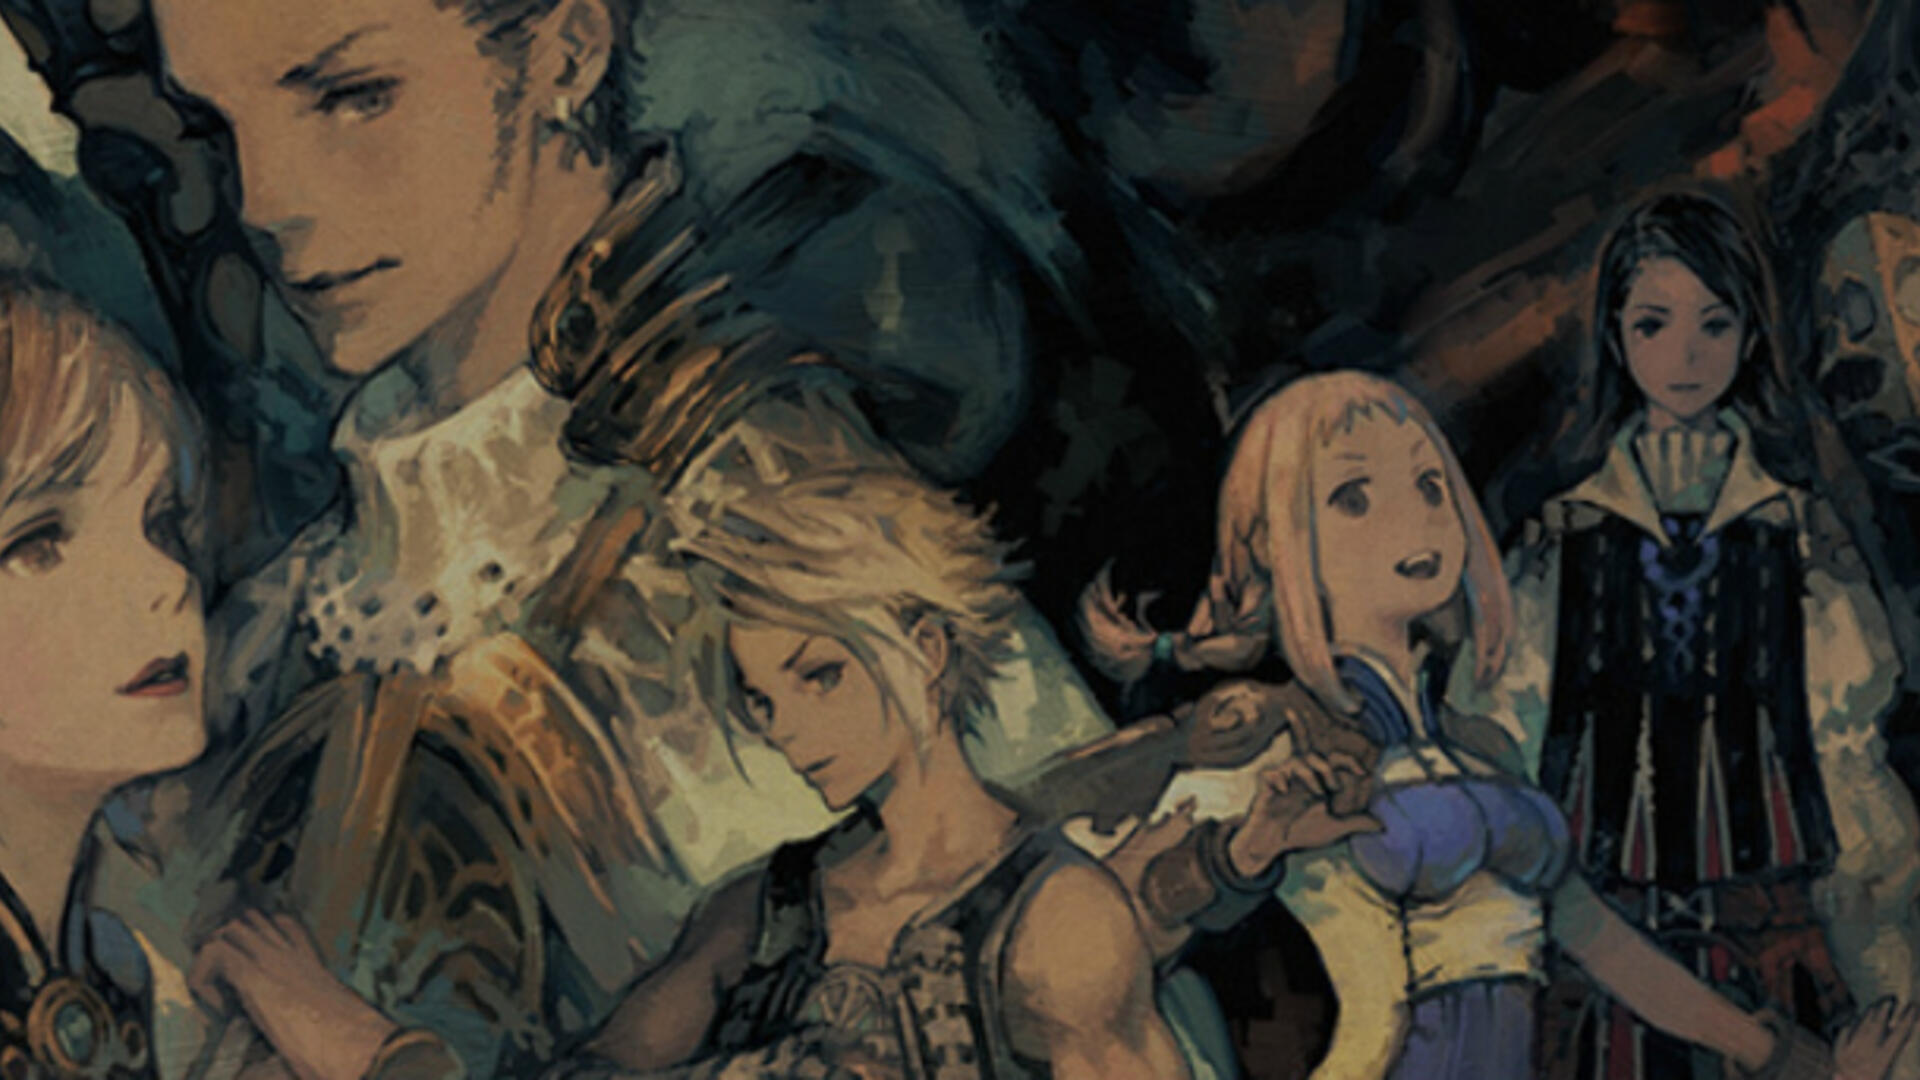 Final Fantasy 10 and 10-2 HD, Final Fantasy 12: The Zodiac Age Get Release Dates for the Switch